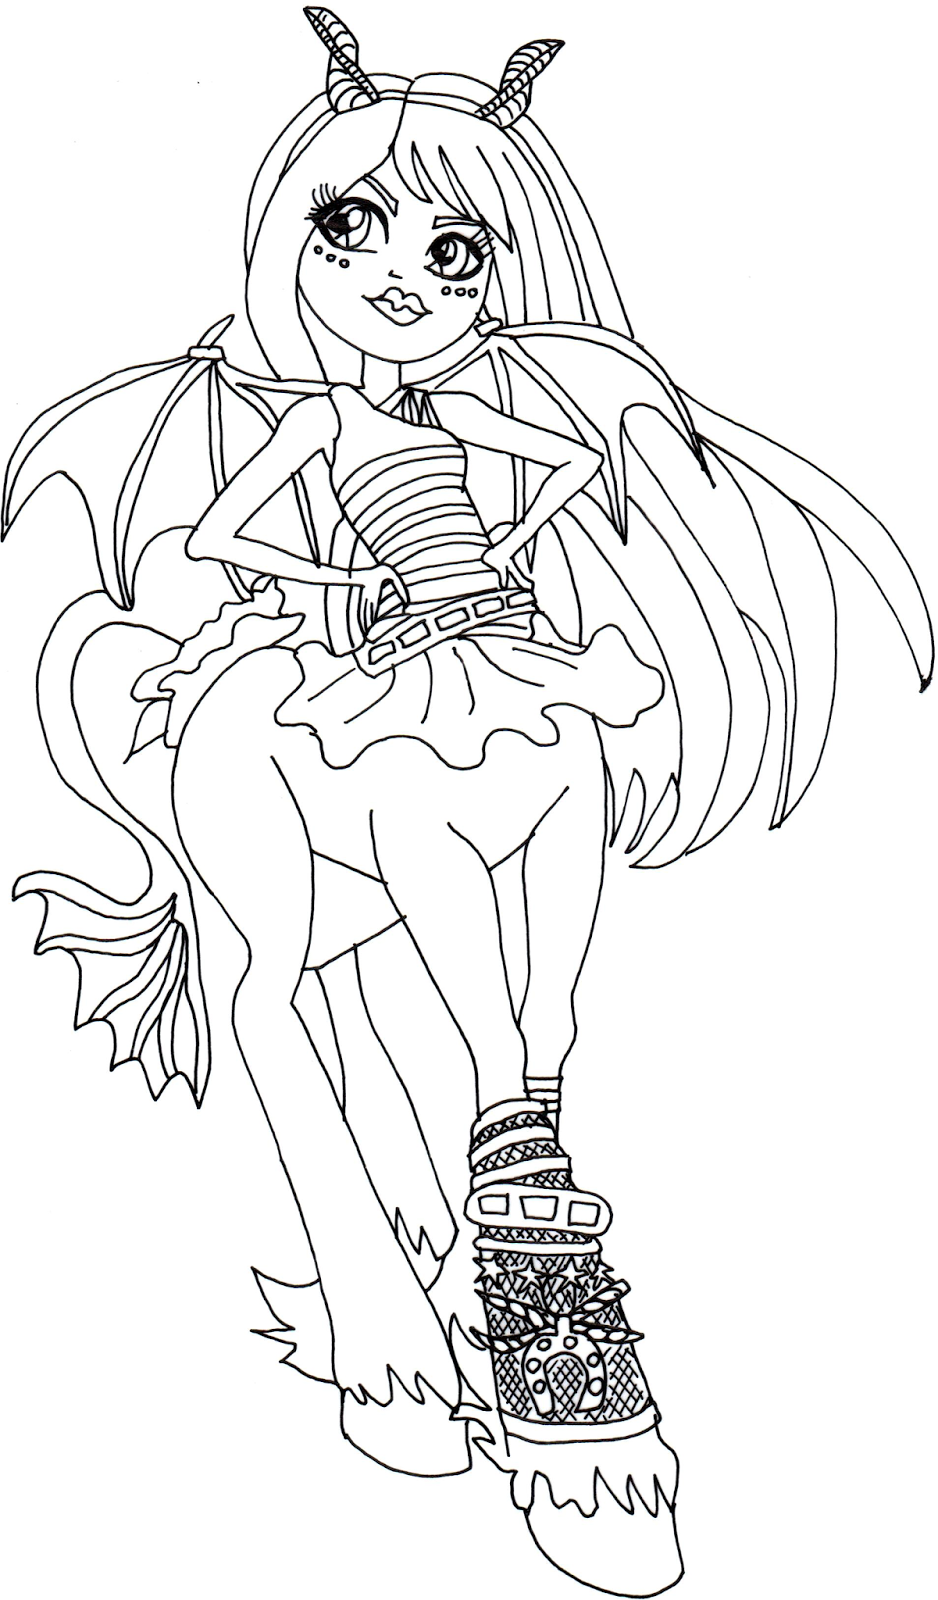 Free Printable Monster High Coloring Pages: Frets